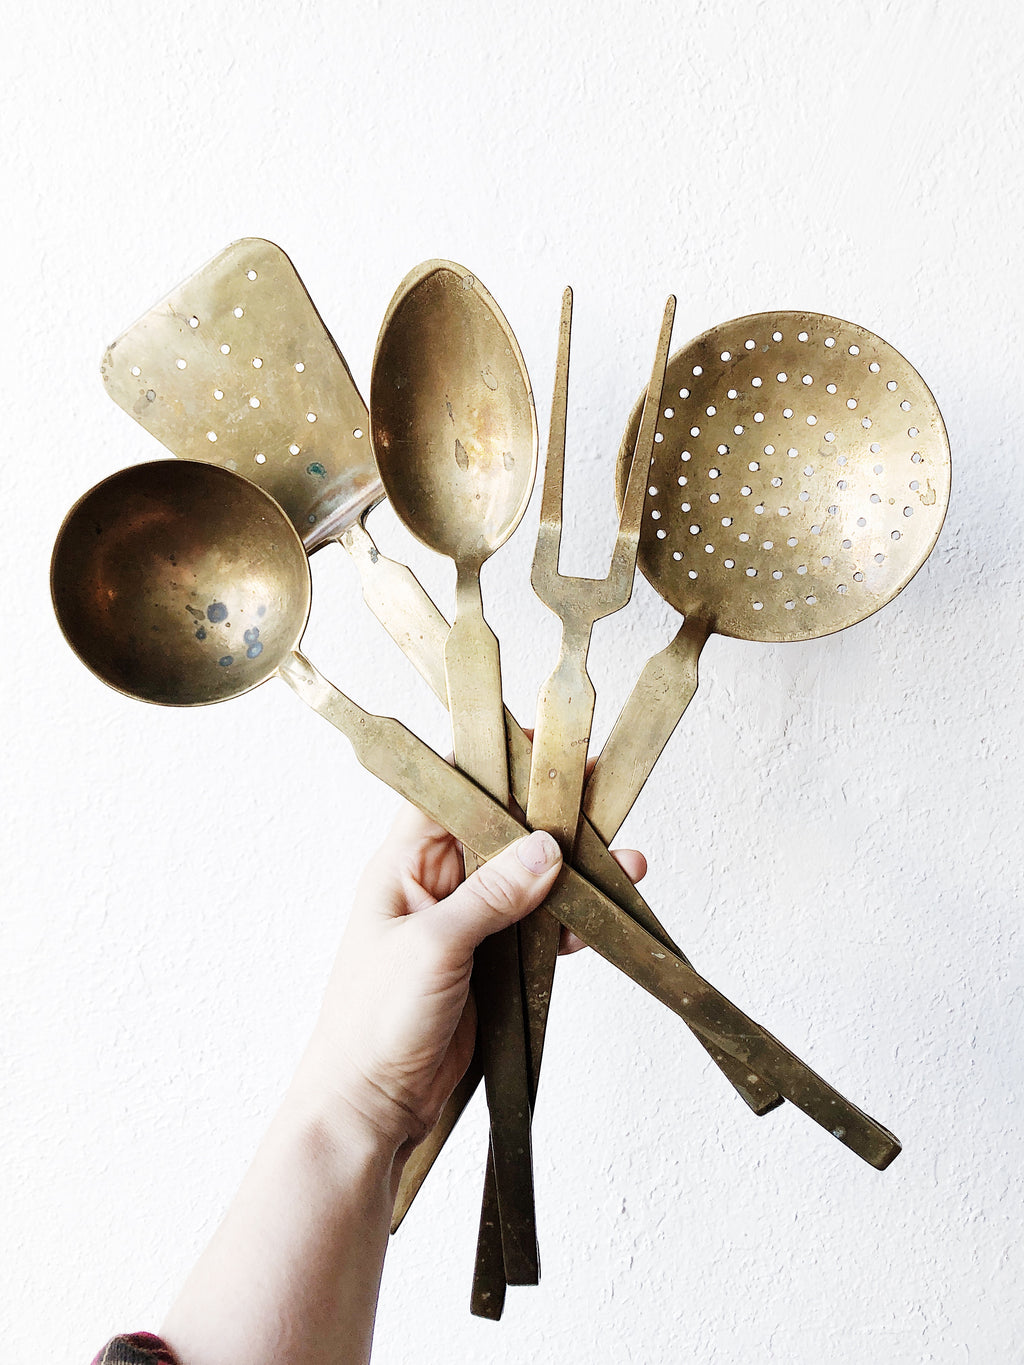 Oversized Vintage Brass Serving Utensil Set